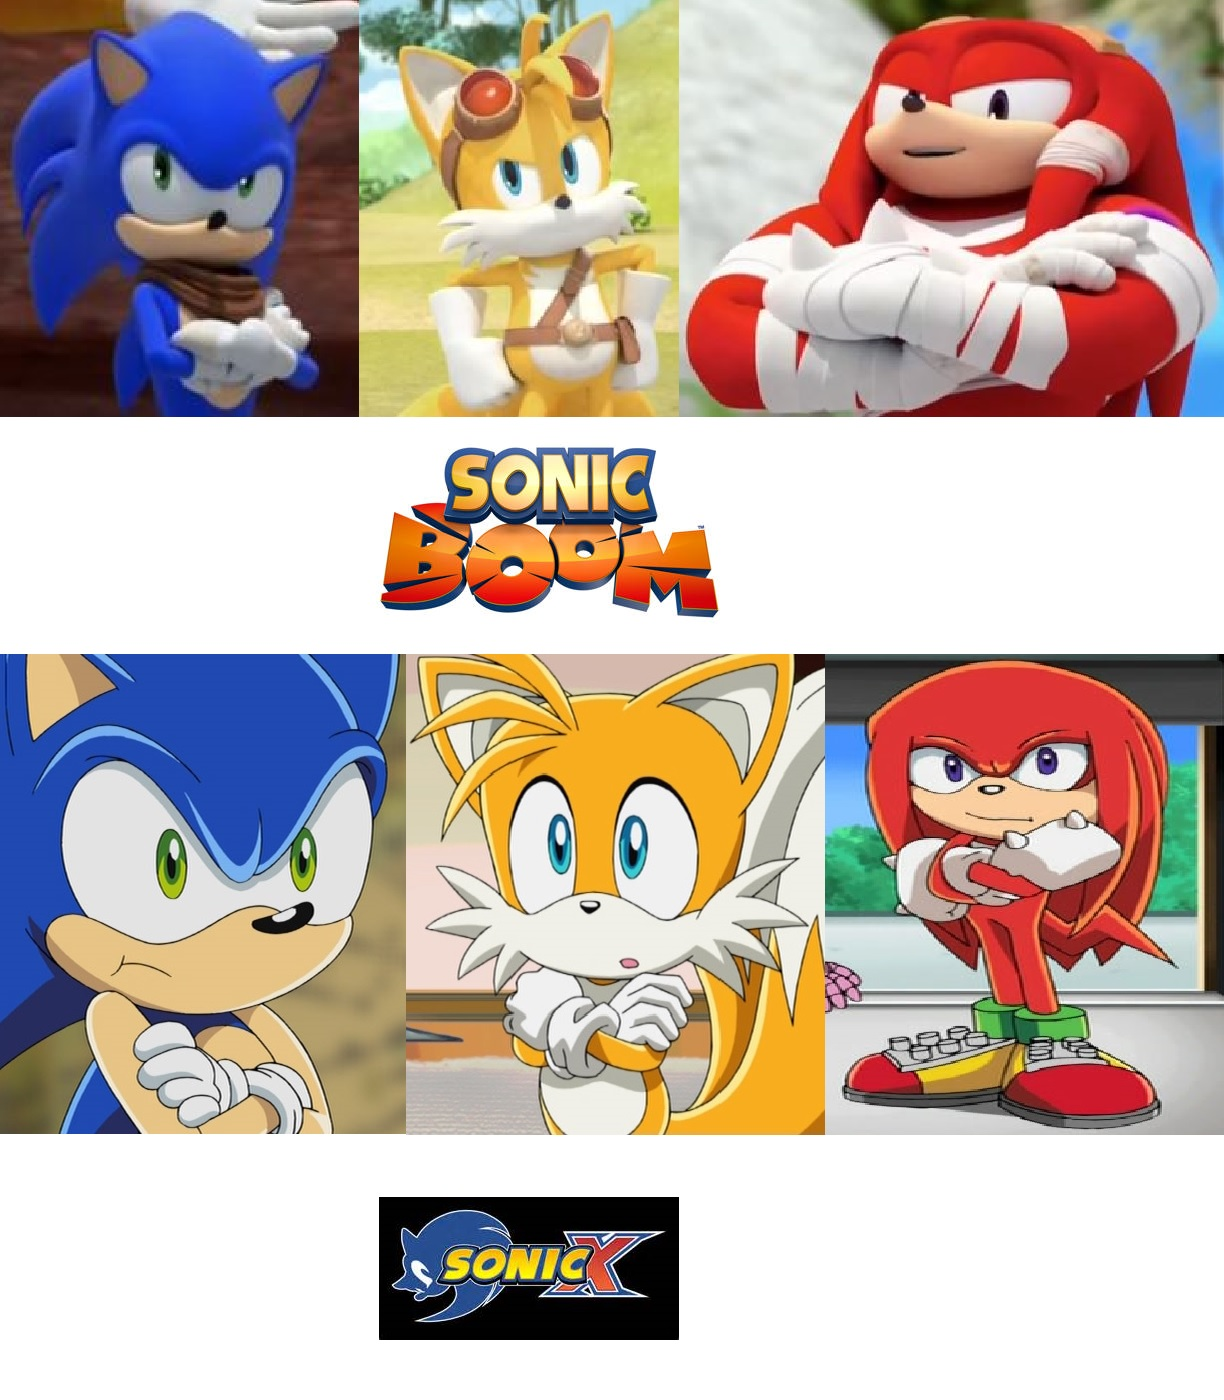 Fotos Do Sonic X intended for sonic x favouritesmagic135 on deviantart